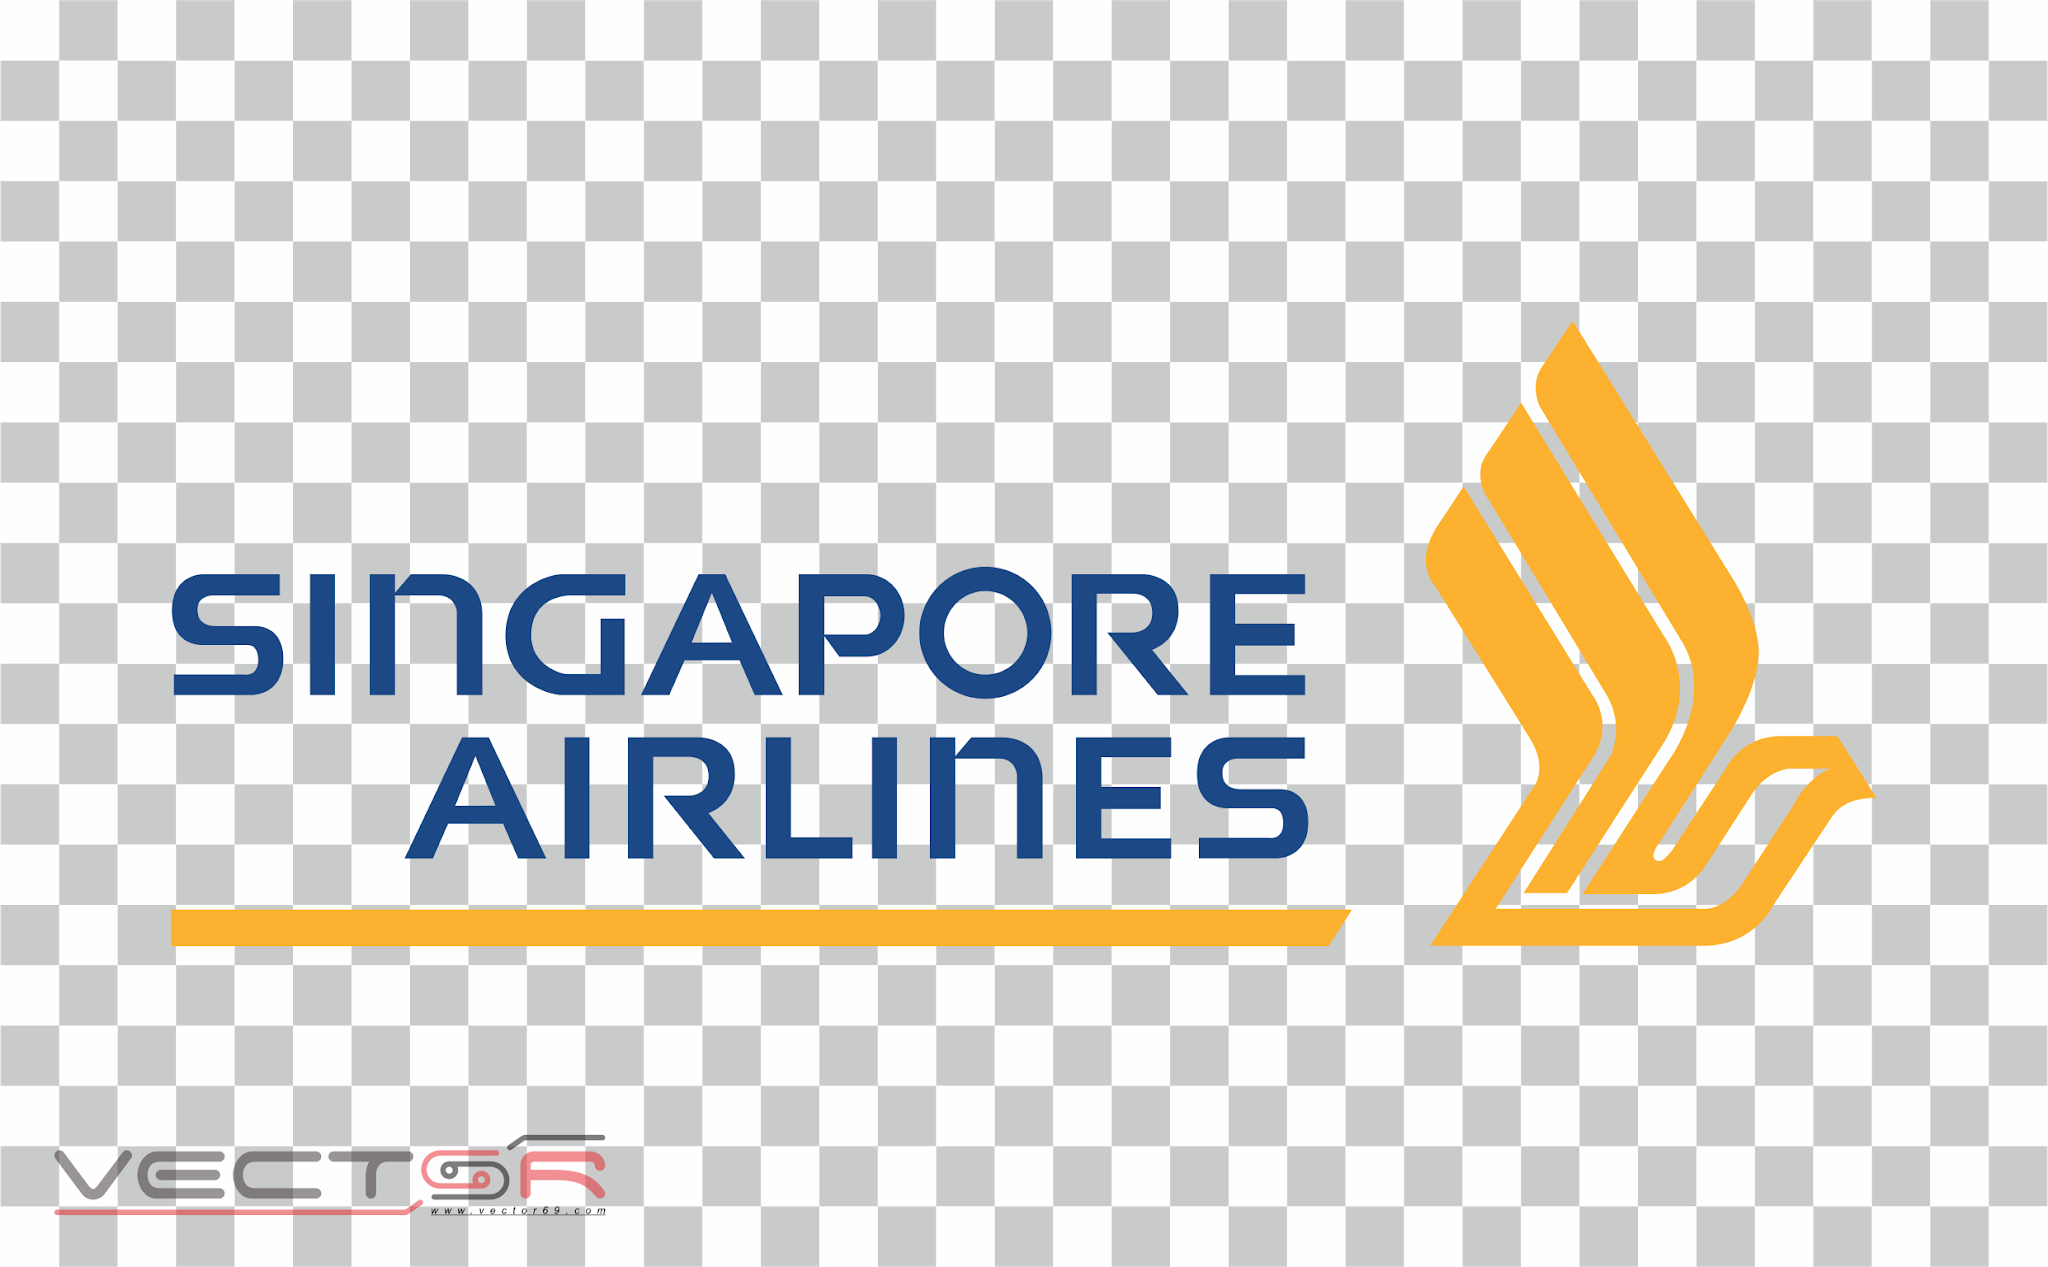 Singapore Airlines Logo - Download .PNG (Portable Network Graphics) Transparent Images